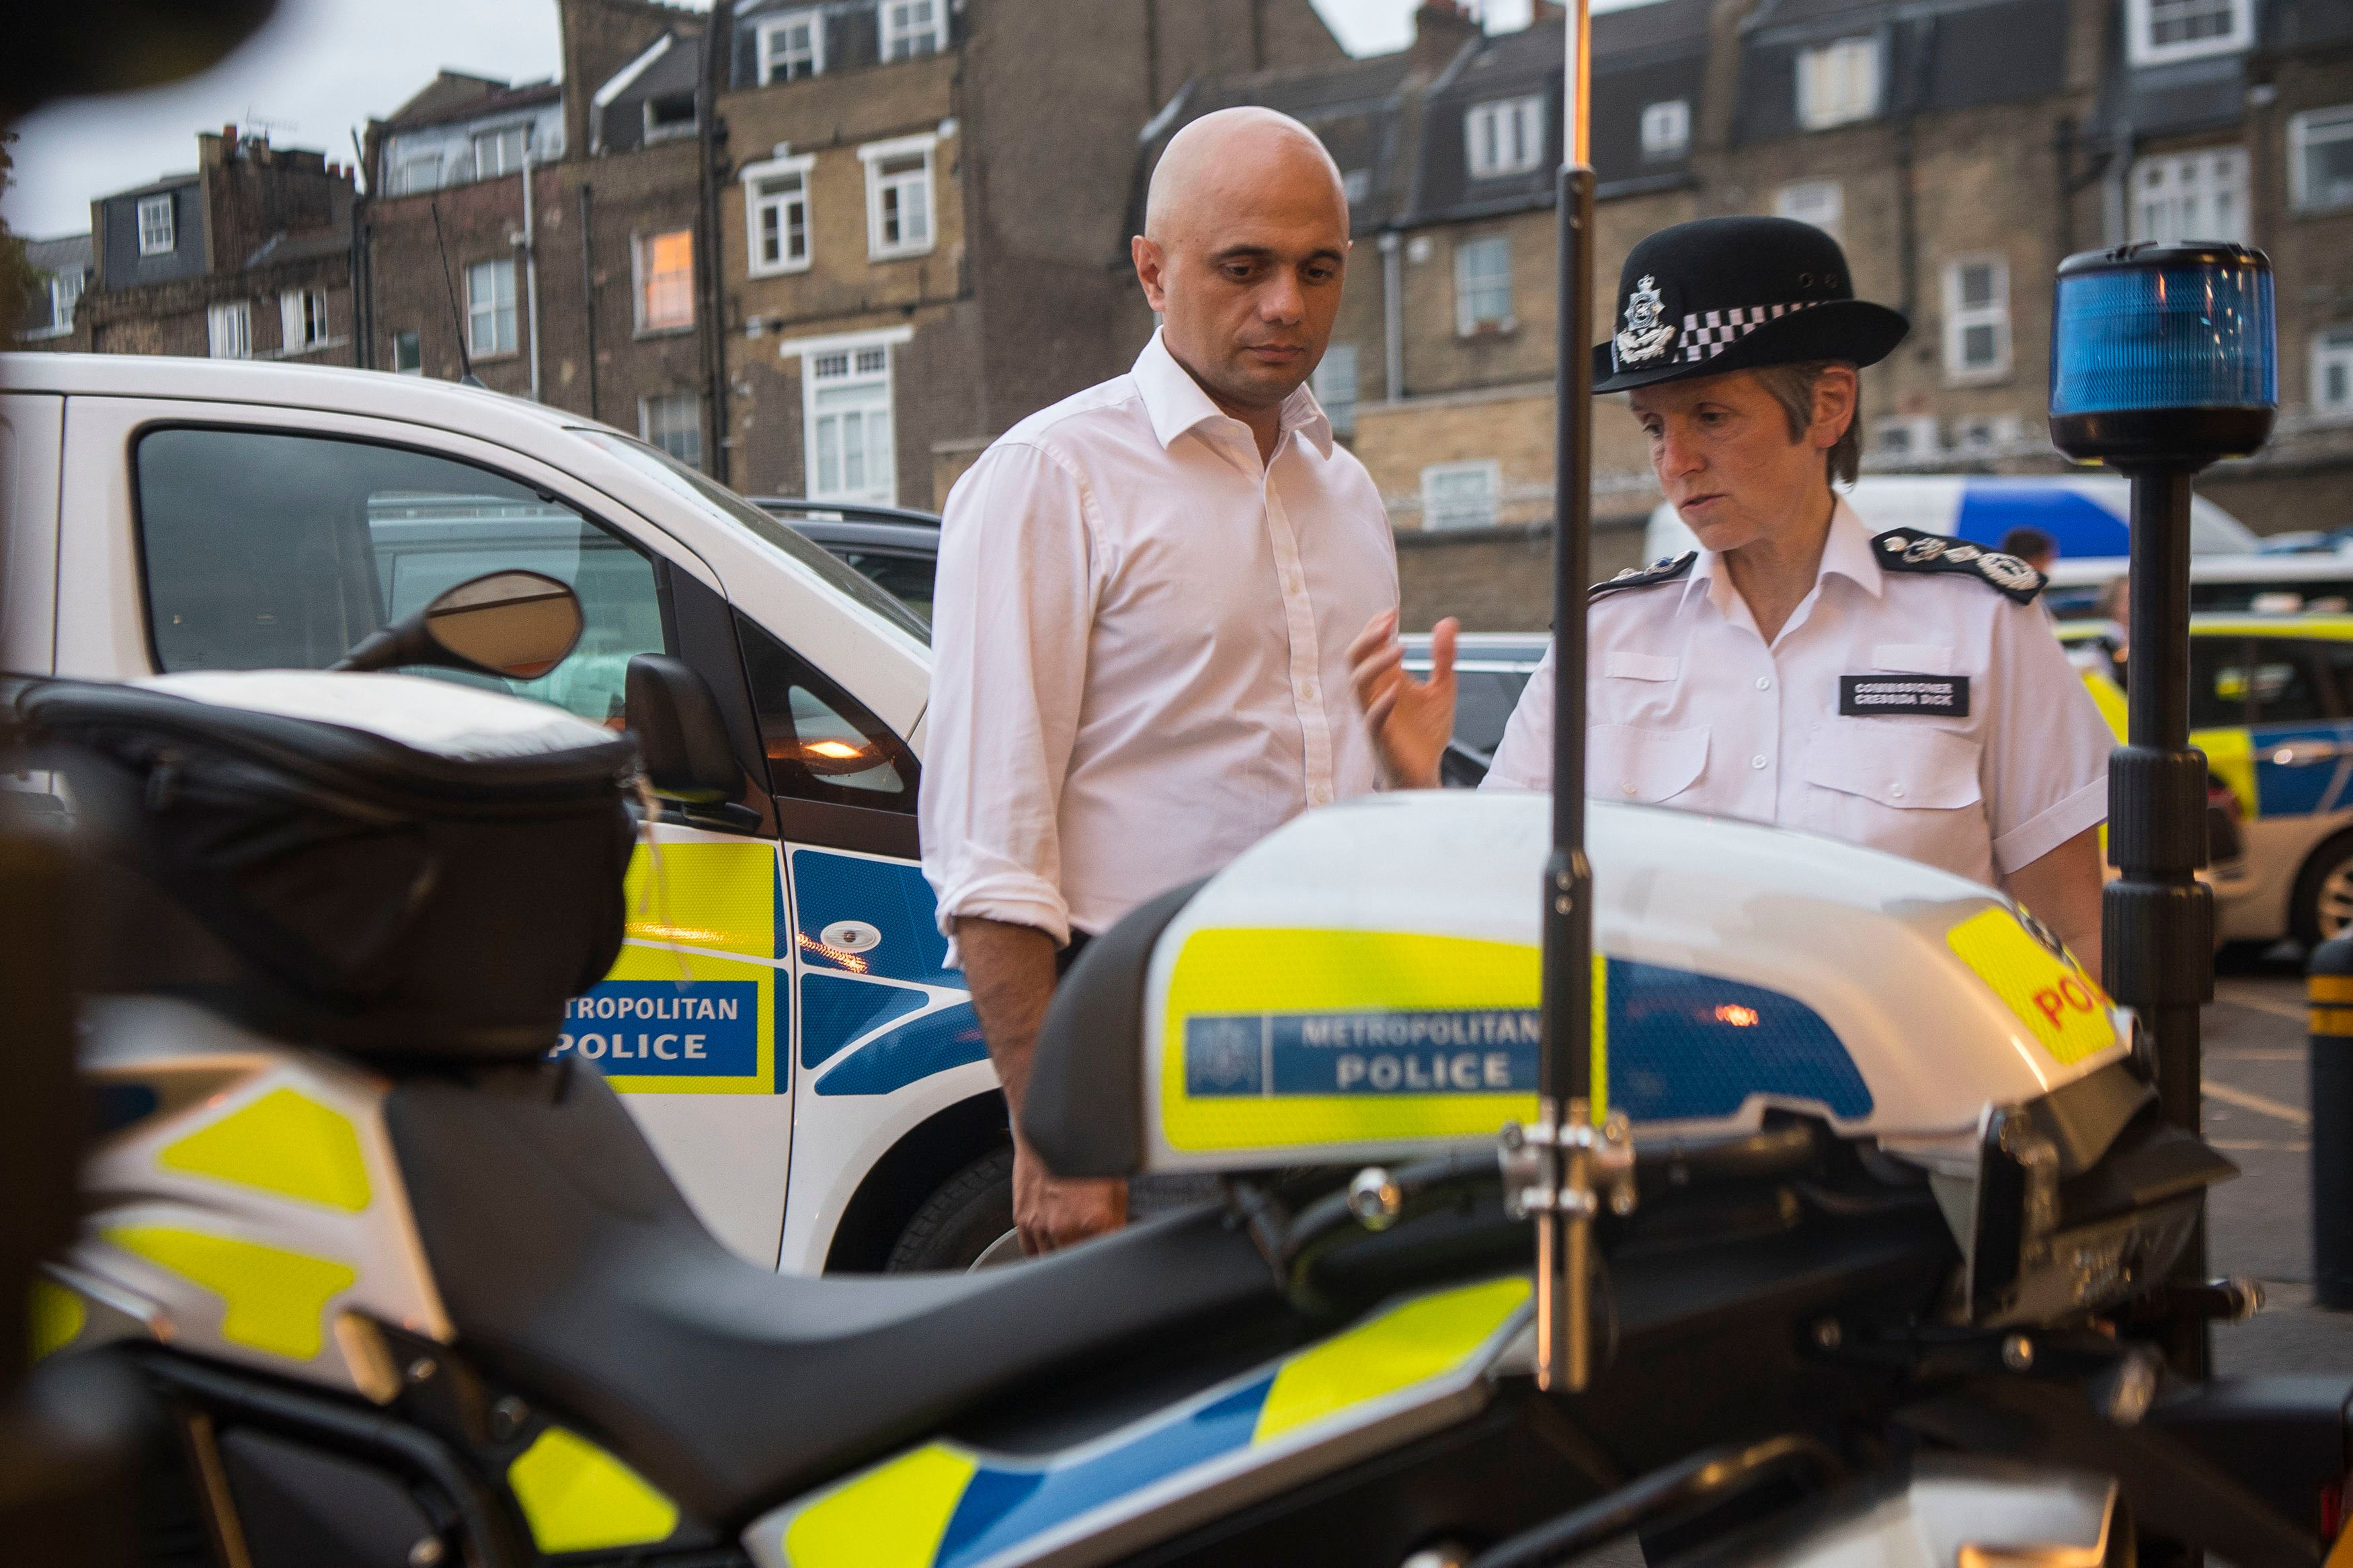 Sajid Javid Hints At More Cash To Boost Police Response To Knife Crime, As Victims Fight For